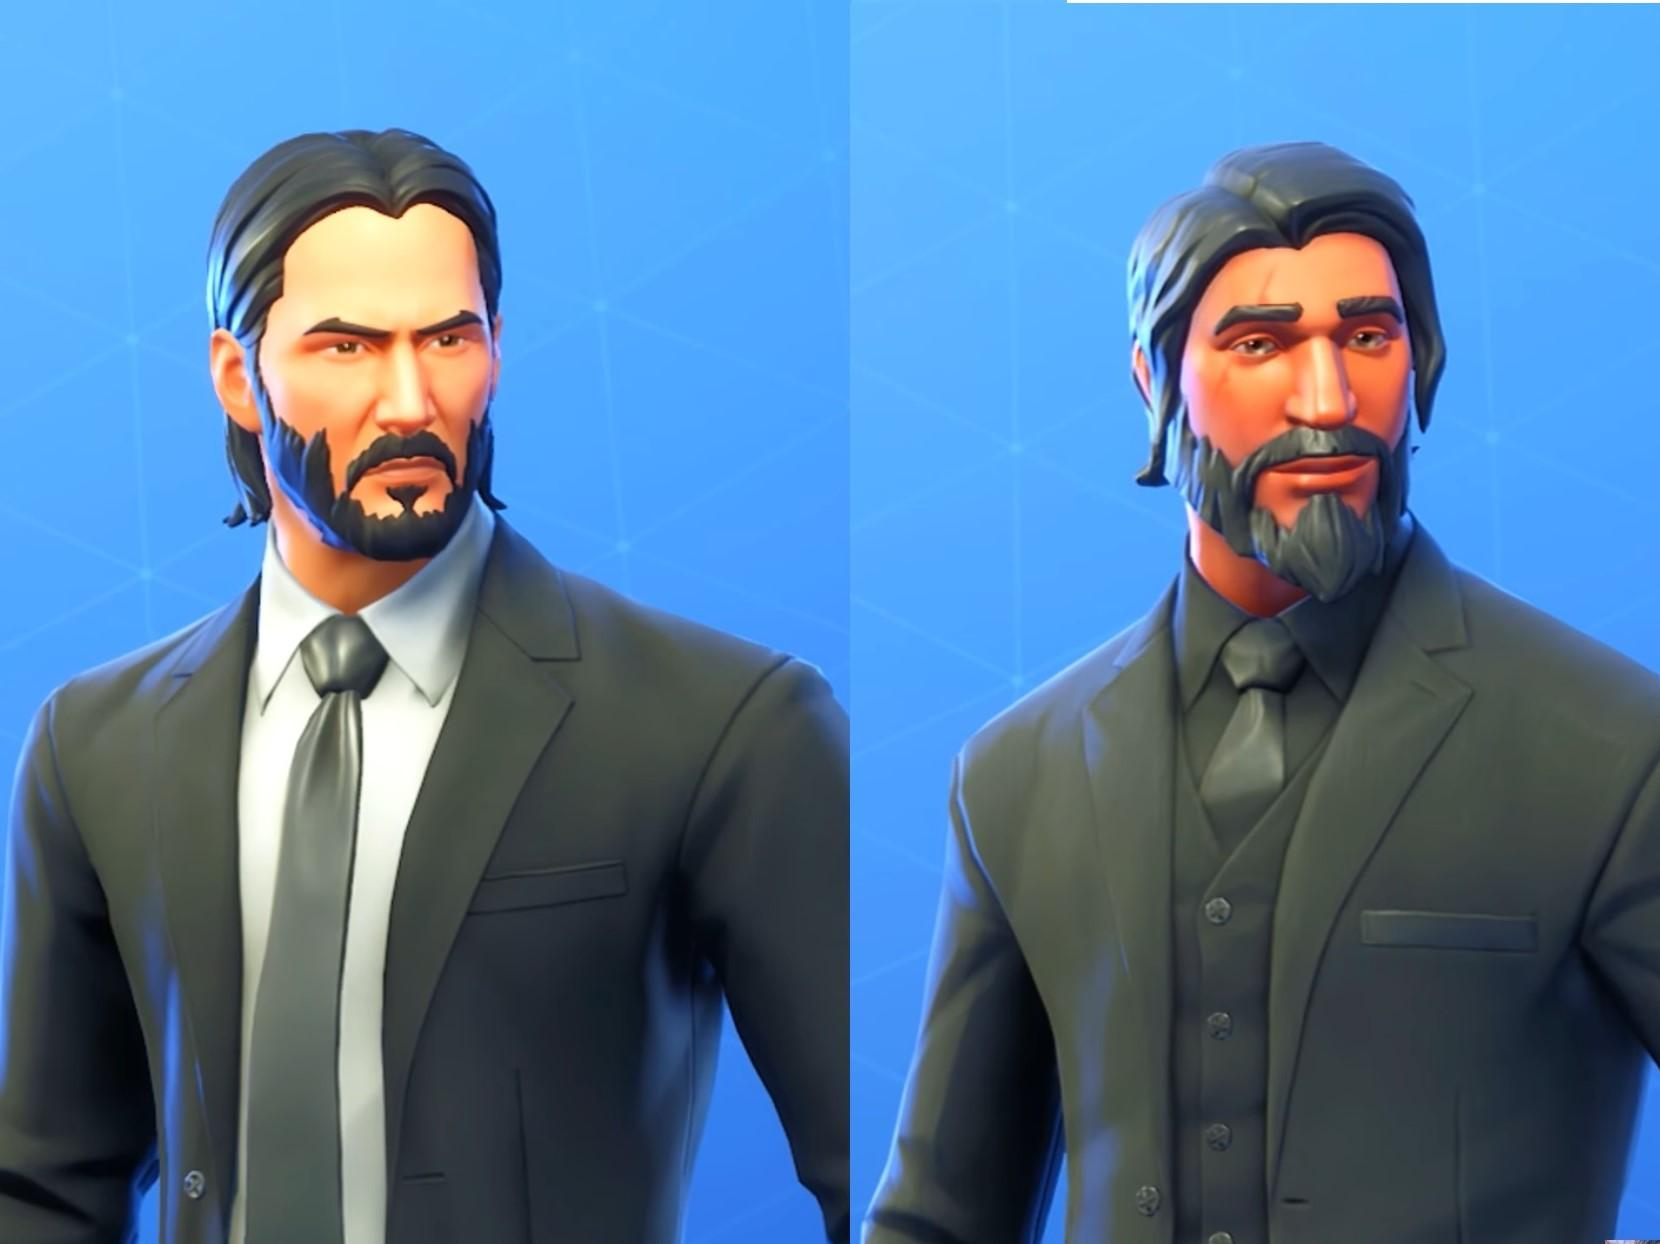 Keanu Reeves Called Fortnite Guy So Much He Decided To Make Official John Wick Skin Epic Games Reveals The Independent The Independent